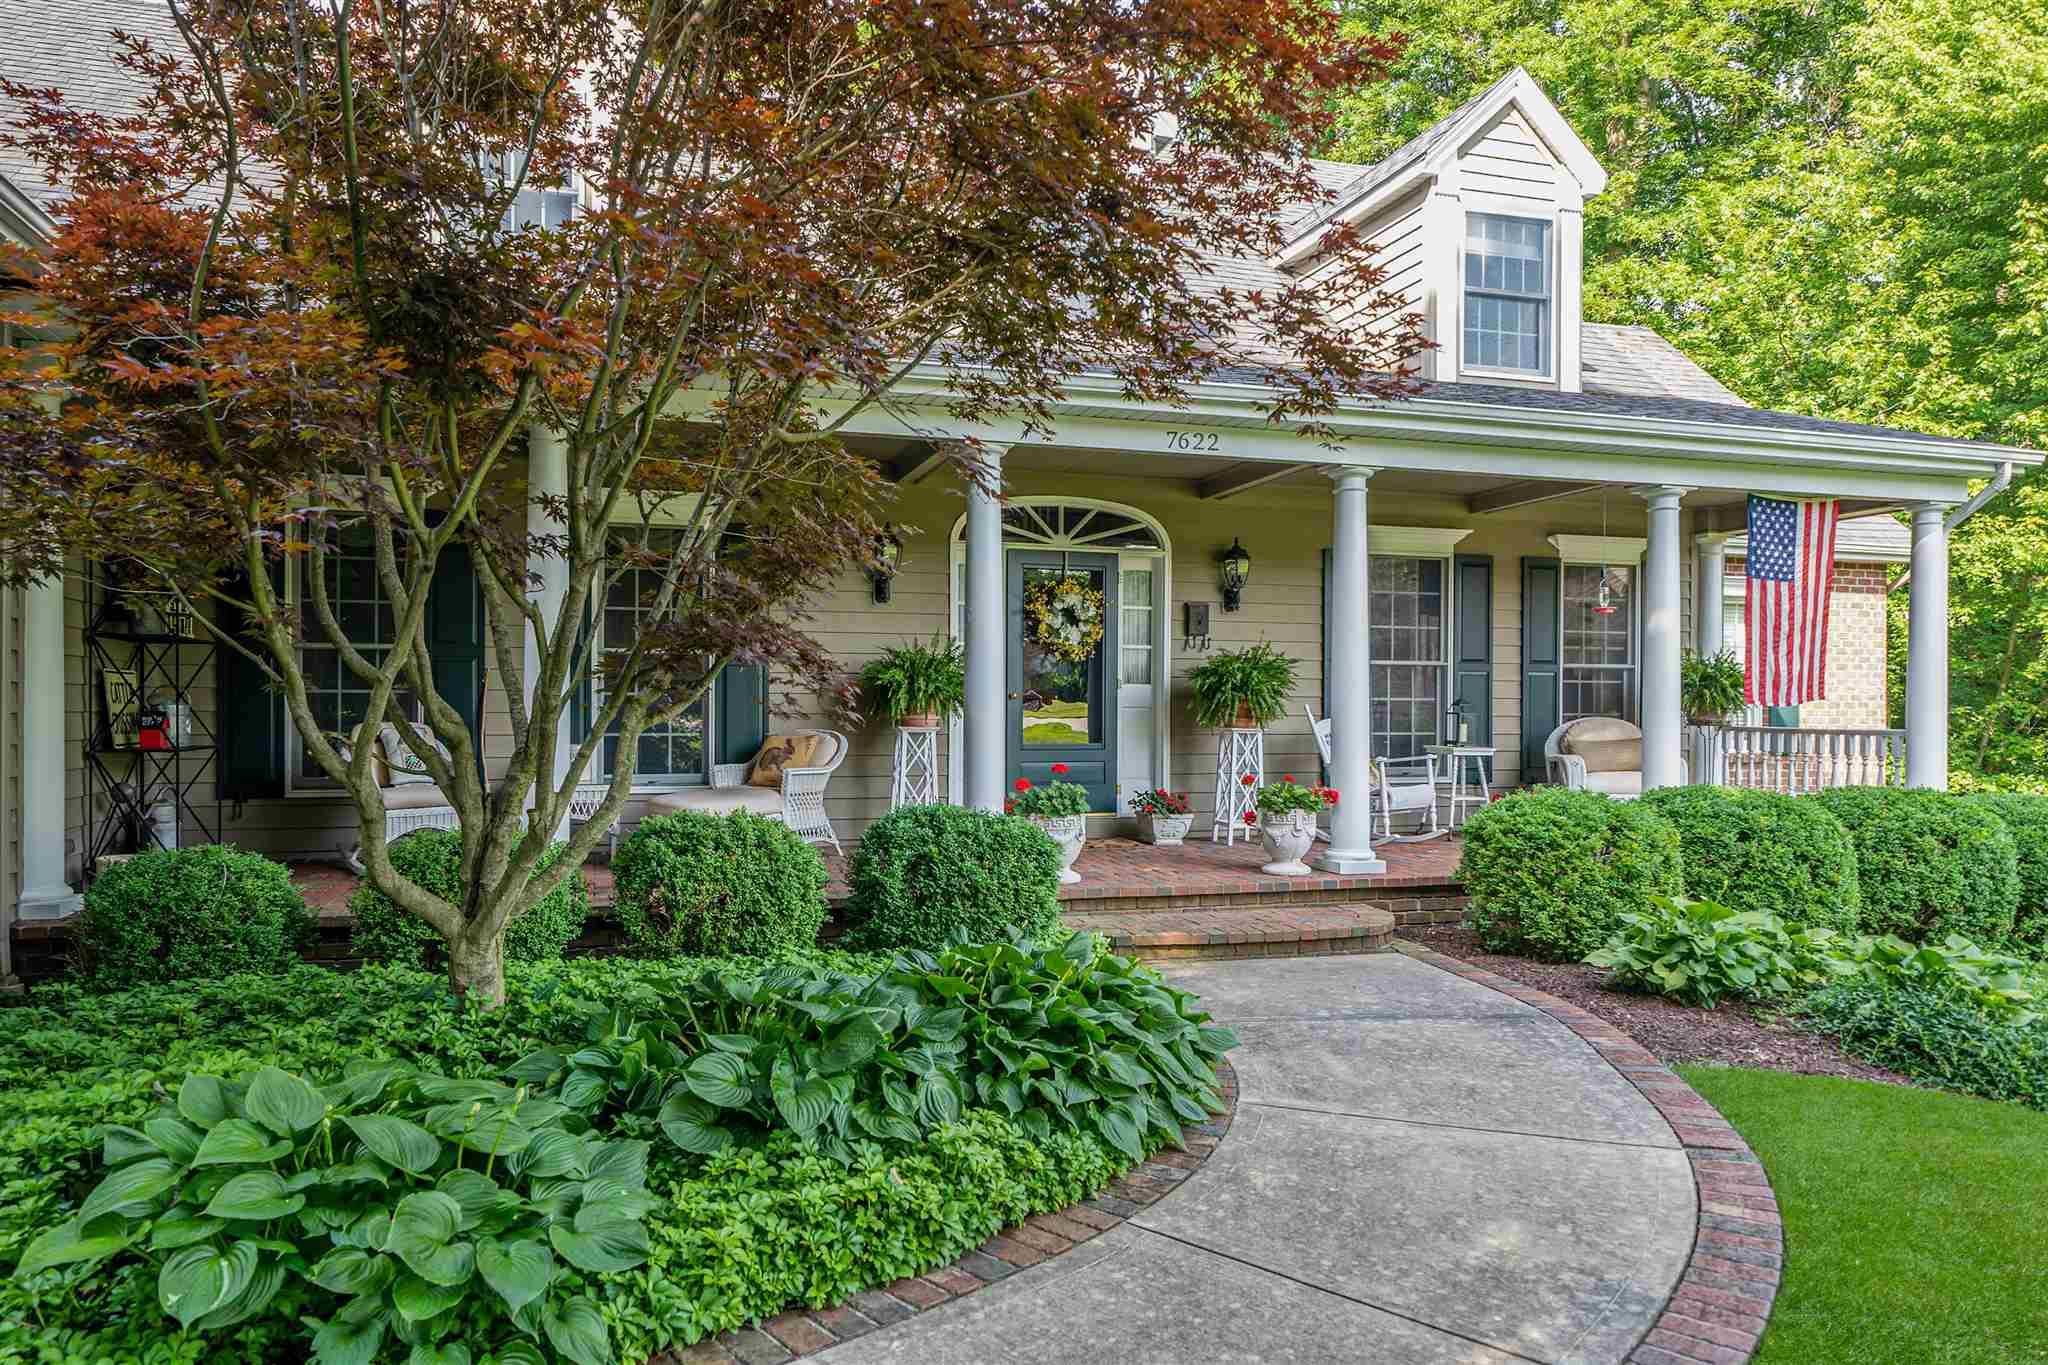 """QUALITY custom home in a peaceful setting just minutes from shopping, SWAC schools, hospitals & I-69! The covered front porch welcomes you into this Byall-built beauty. Boasting over 3800 sq ft above grade. The upgraded traditional floor plan means you enjoy both a 4 season room and a screened porch. Gourmet kitchen with built-in butler's pantry and kitchen hutch. Large island with prep sink opens to the hearth room and 4 season's room. Main floor primary suite with marble countertops in the ensuite, jetted tub and a shower built for two! Upstairs there are 2 bedrooms, each with their own ensuite and a bonus large finished attic space off bdrm 3 that has its own separate staircase opening into the kitchen/hearth. The lower level boats plenty of room for entertaining, a large guest room, full bath and loads of storage. 4 masonry fireplaces, coffered ceilings, crown & base molding galore and French doors grace this lovely home. Not a detail was overlooked! Constructed with 6"""" walls and I-beams."""